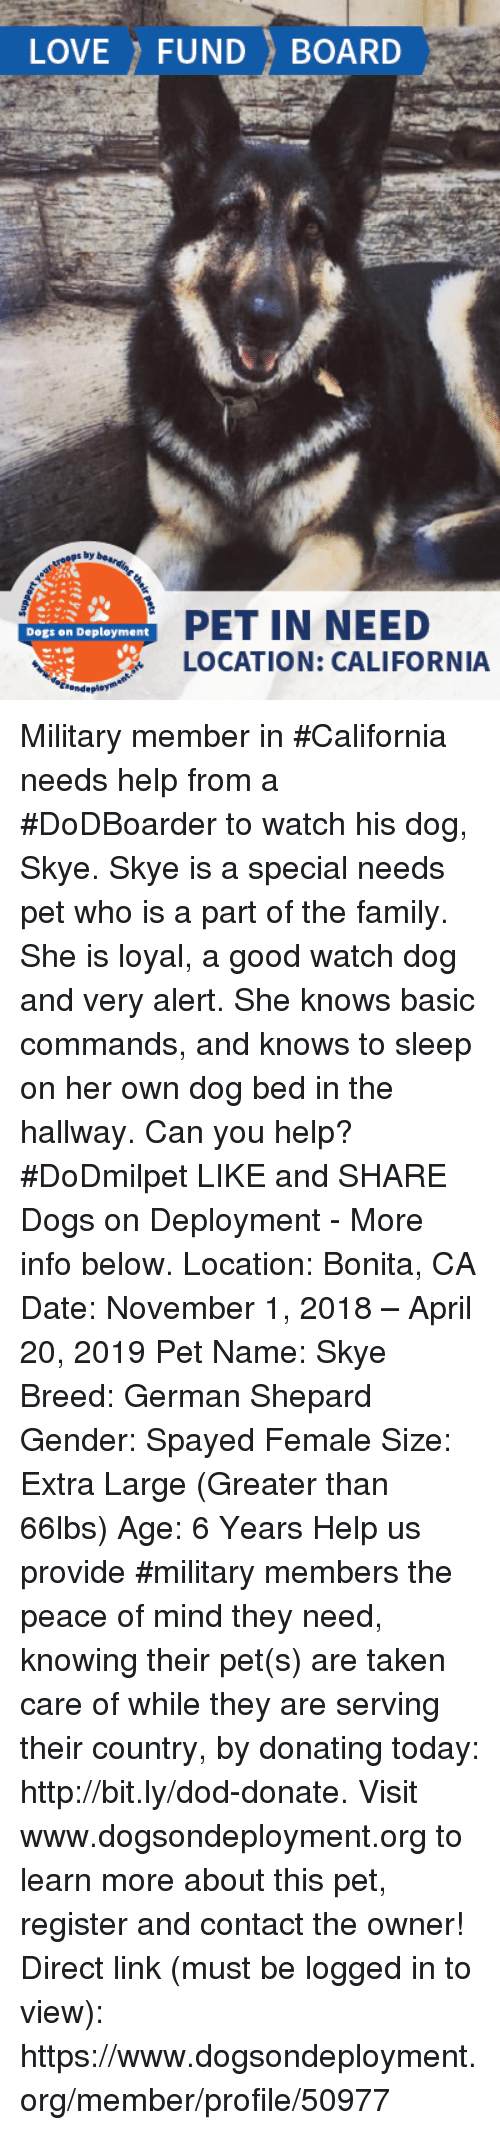 Dogs, Family, and Love: LOVE FUND BOARD  s by  PET IN NEED  LOCATION: CALIFORNIA  Dogs on Deployment Military member in #California needs help from a #DoDBoarder to watch his dog, Skye. Skye is a special needs pet who is a part of the family. She is loyal, a good watch dog and very alert. She knows basic commands, and knows to sleep on her own dog bed in the hallway. Can you help? #DoDmilpet   LIKE and SHARE Dogs on Deployment - More info below.   Location: Bonita, CA Date: November 1, 2018 – April 20, 2019  Pet Name: Skye Breed: German Shepard Gender: Spayed Female Size: Extra Large (Greater than 66lbs) Age: 6 Years  Help us provide #military members the peace of mind they need, knowing their pet(s) are taken care of while they are serving their country, by donating today: http://bit.ly/dod-donate.   Visit www.dogsondeployment.org to learn more about this pet, register and contact the owner!  Direct link (must be logged in to view): https://www.dogsondeployment.org/member/profile/50977